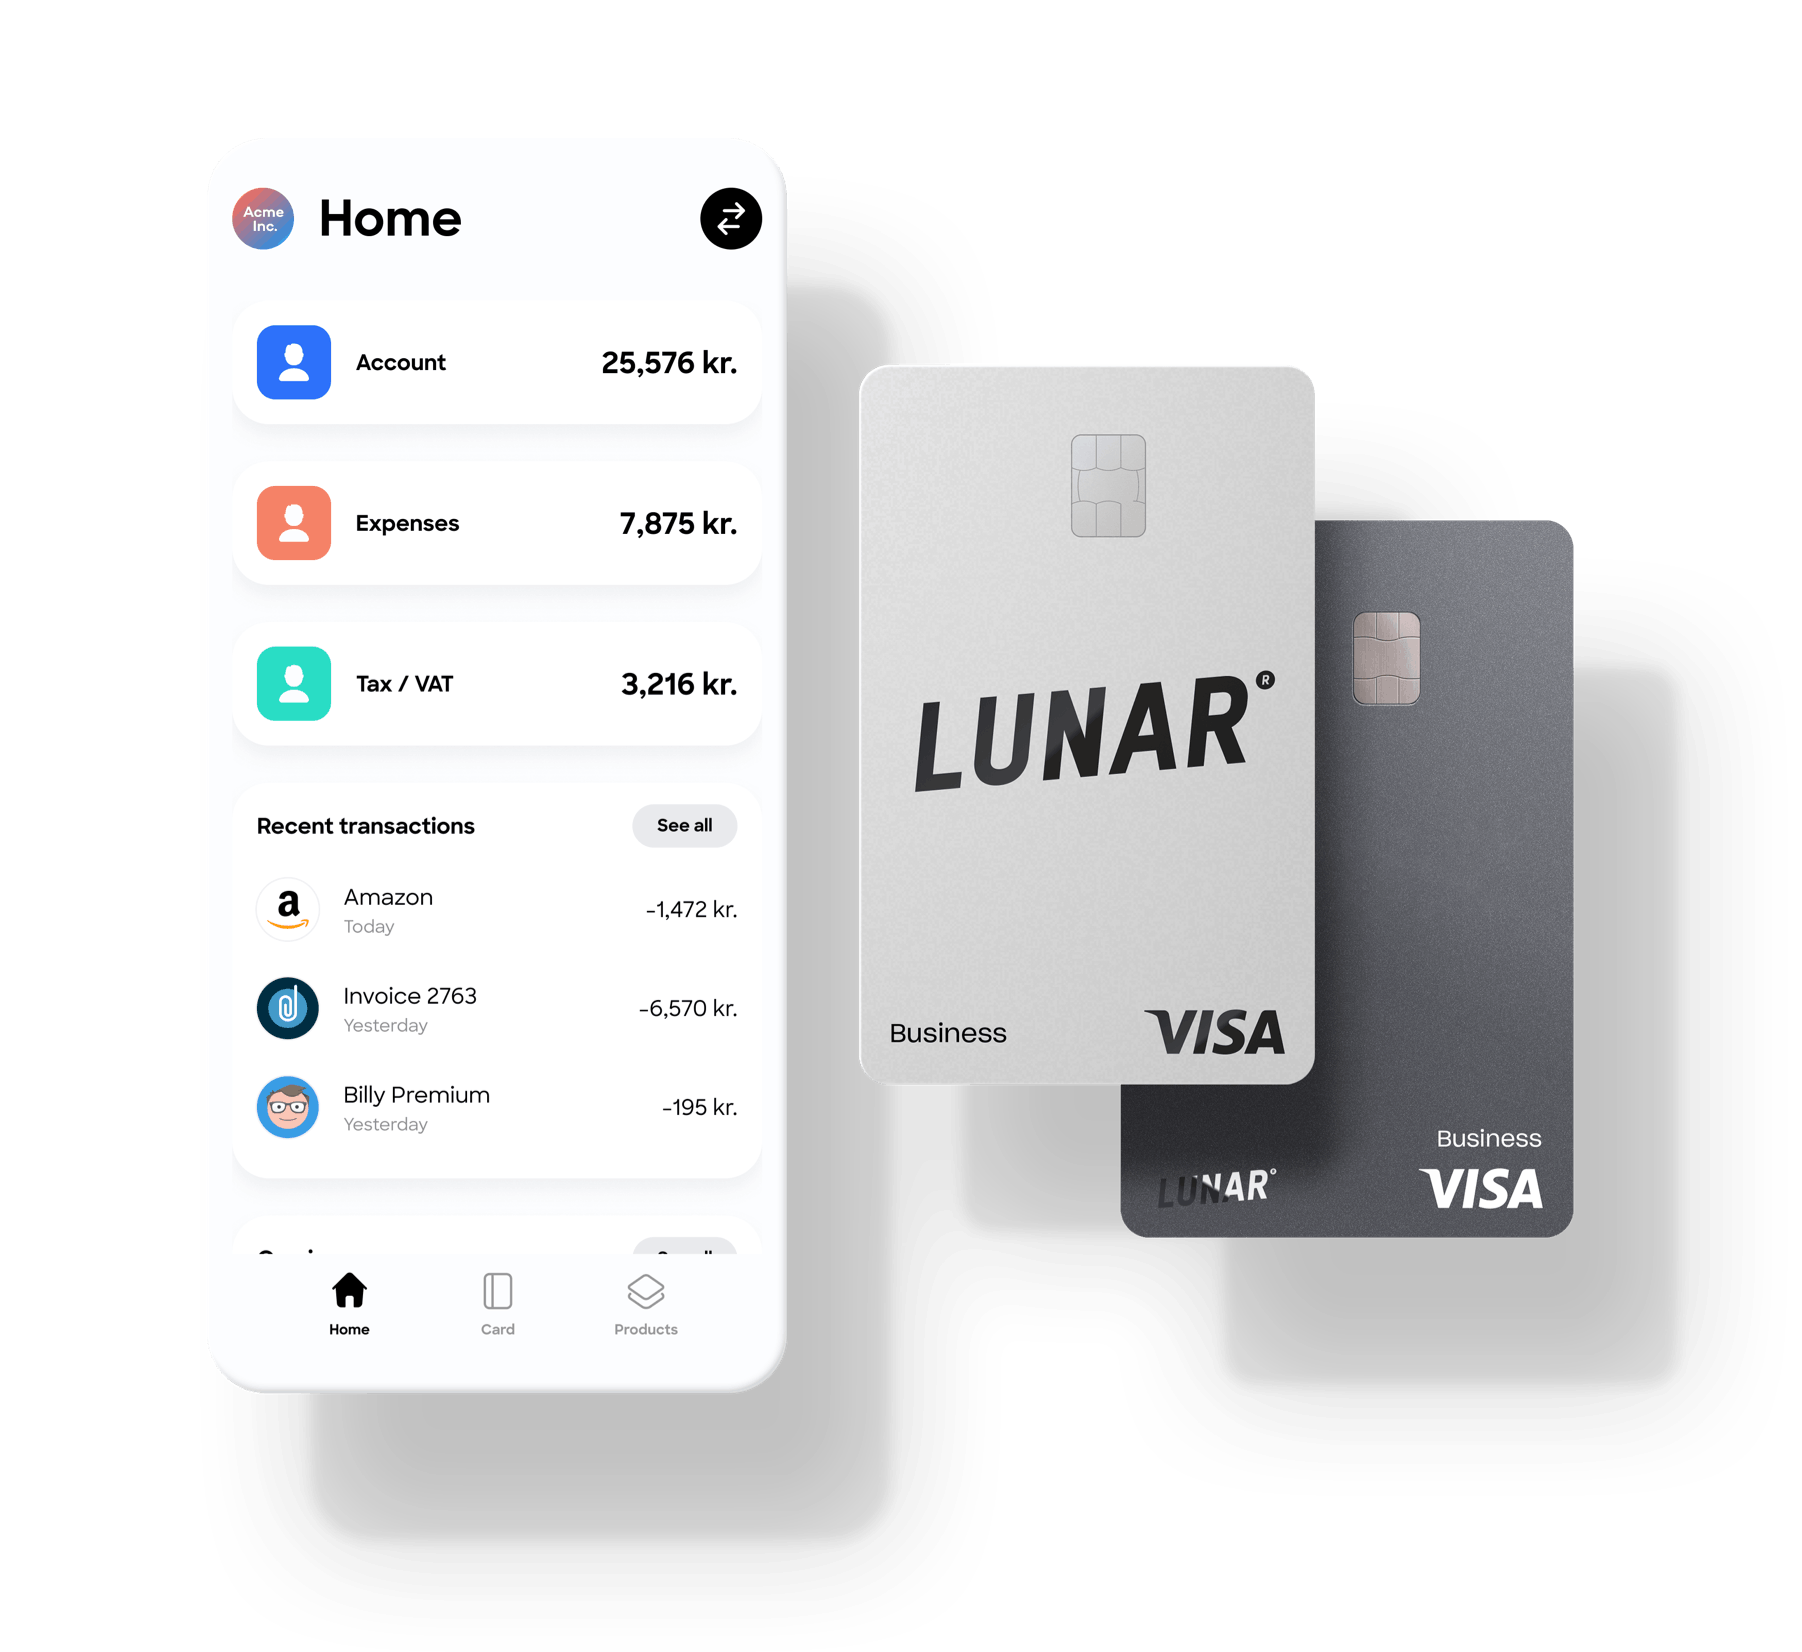 Lunar Business account and card